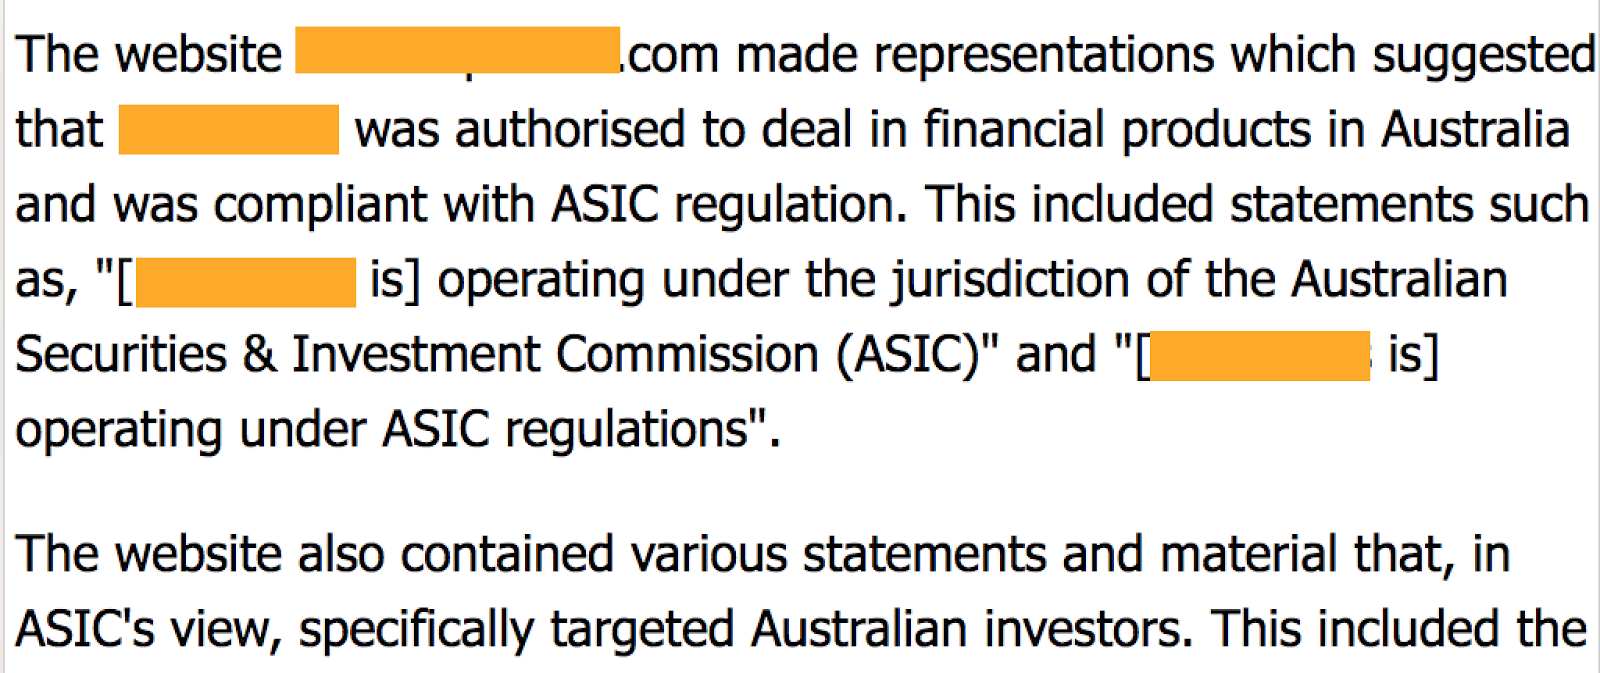 7 - Example 5 - Violation report issued by Australian regulator.png